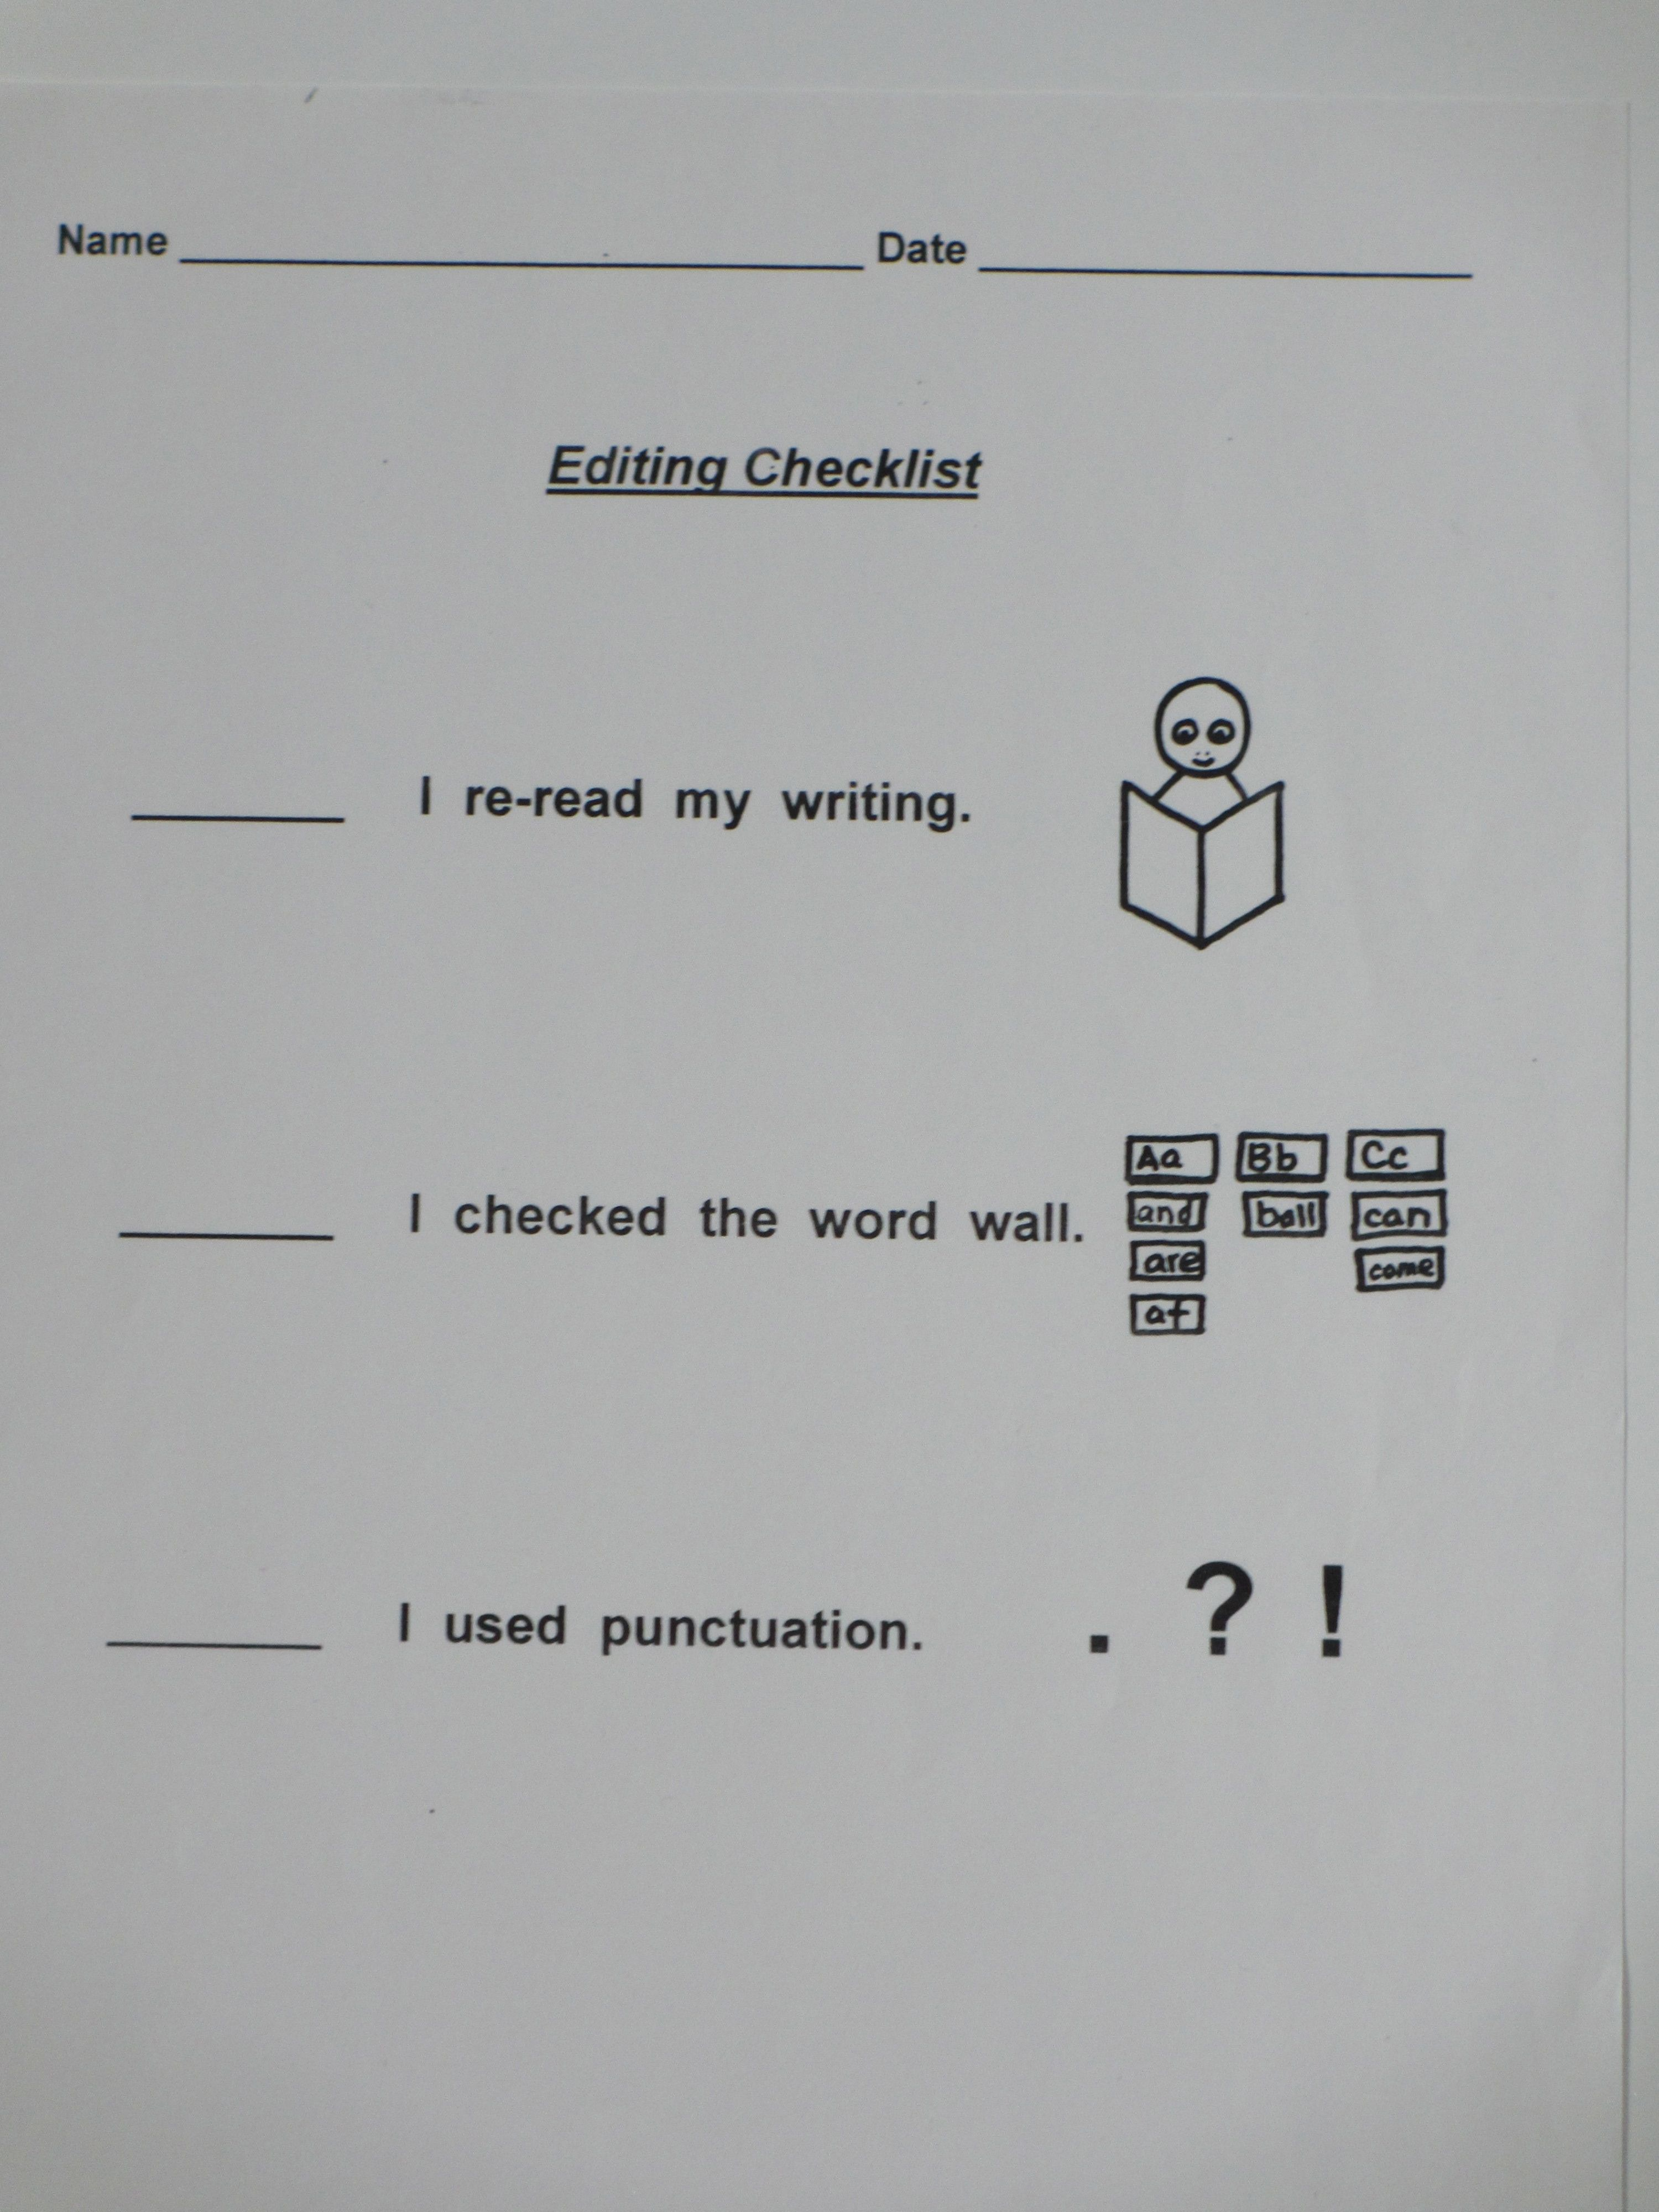 Charting the Common Core Part II Editing checklist